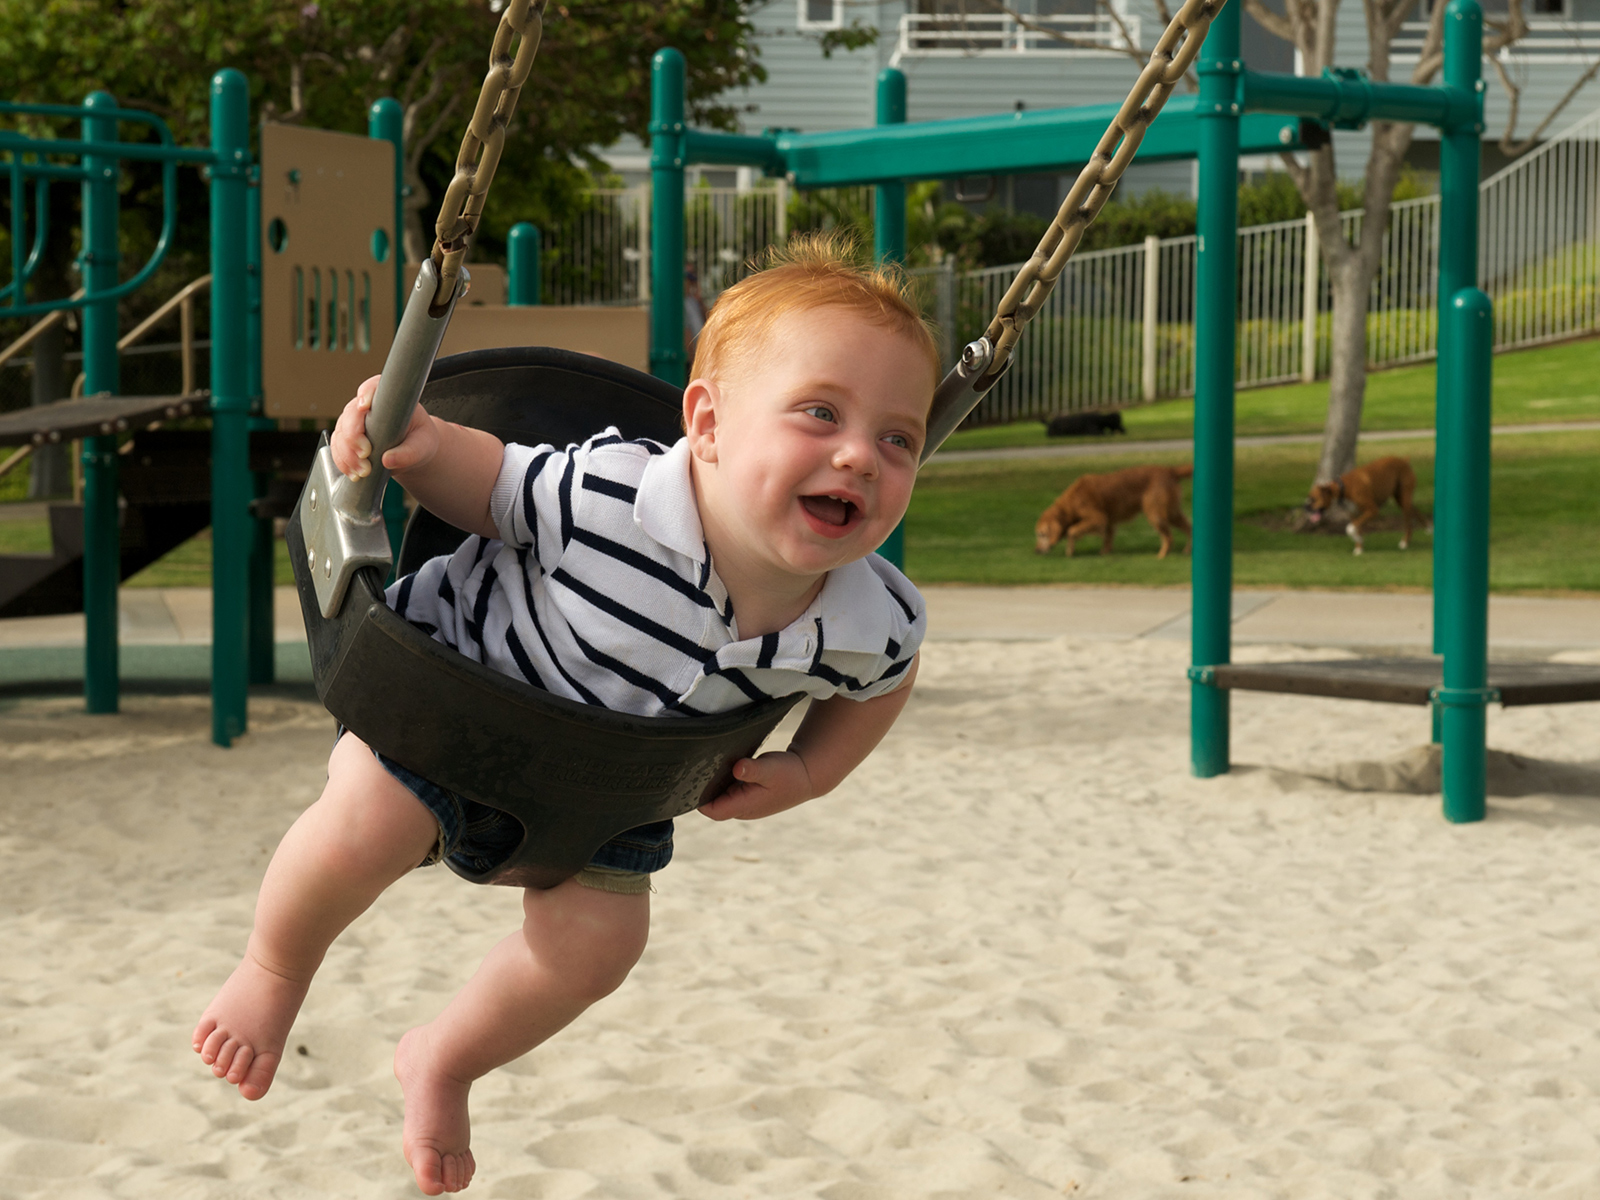 Devon happily flying around on a swingset at the playground in Encinitas, California, USA